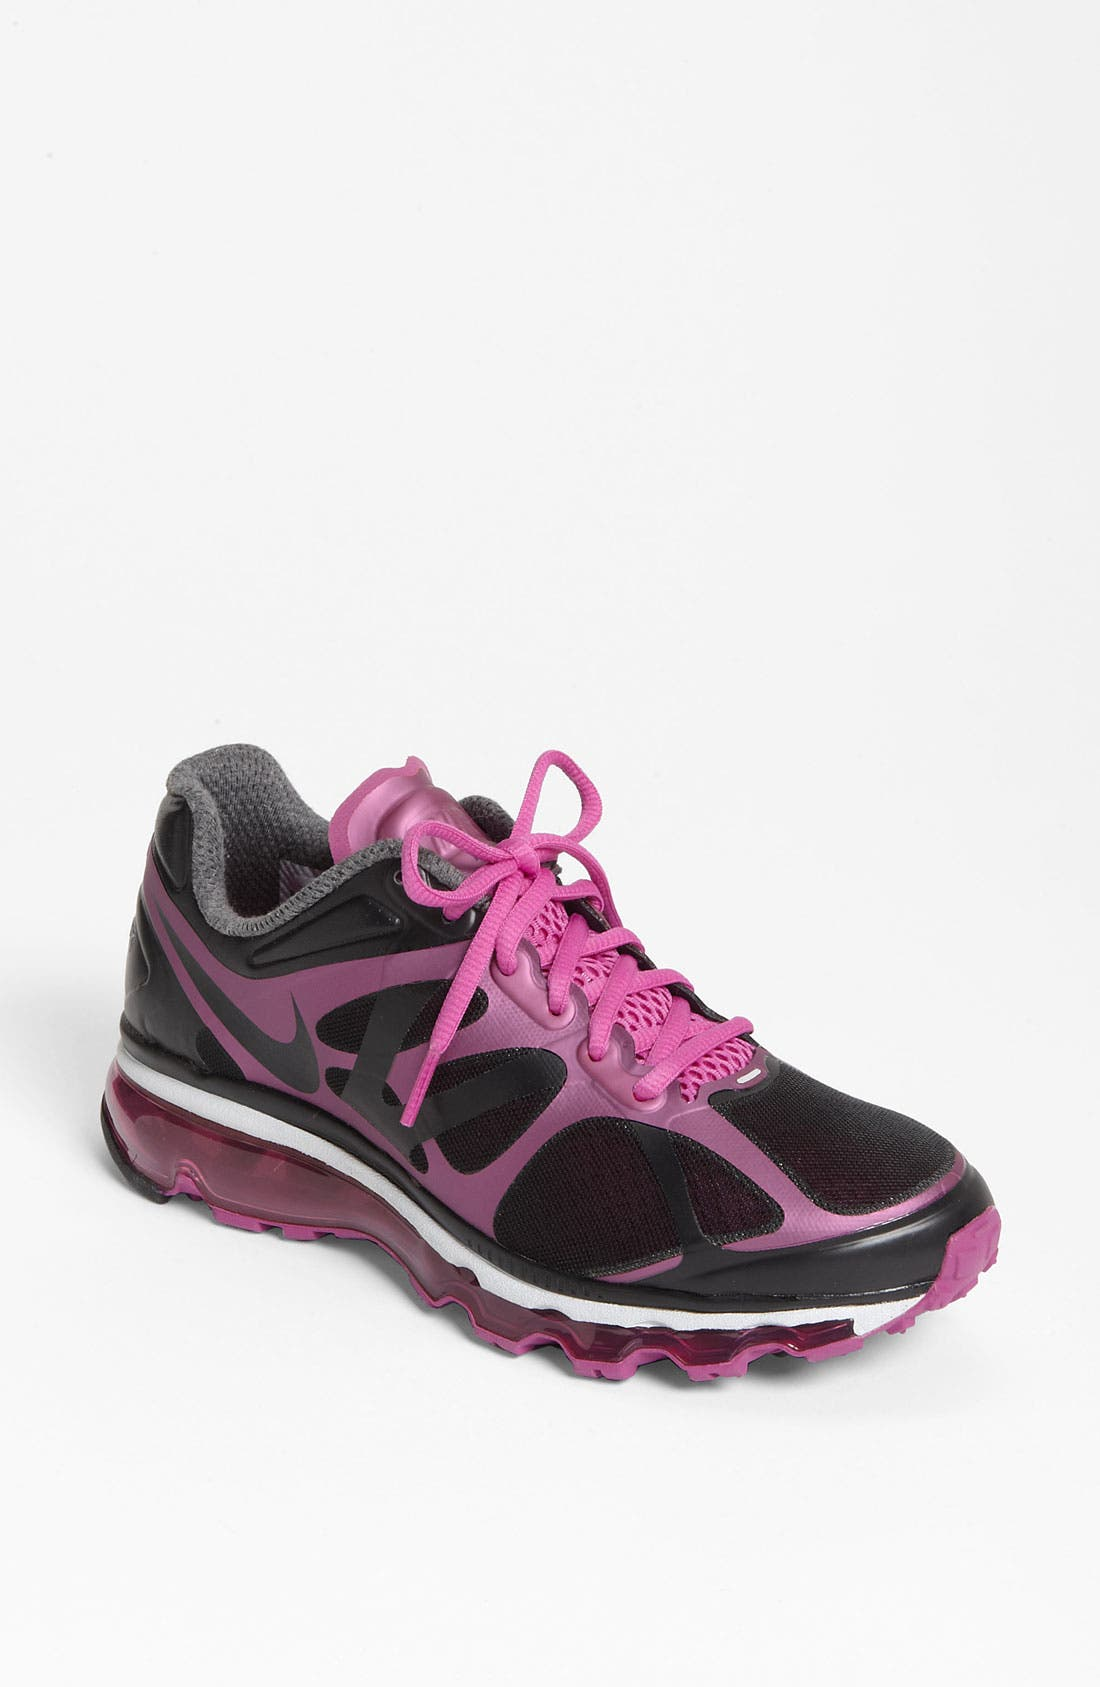 Alternate Image 1 Selected - Nike 'Air Max 2012' Running Shoe (Women)